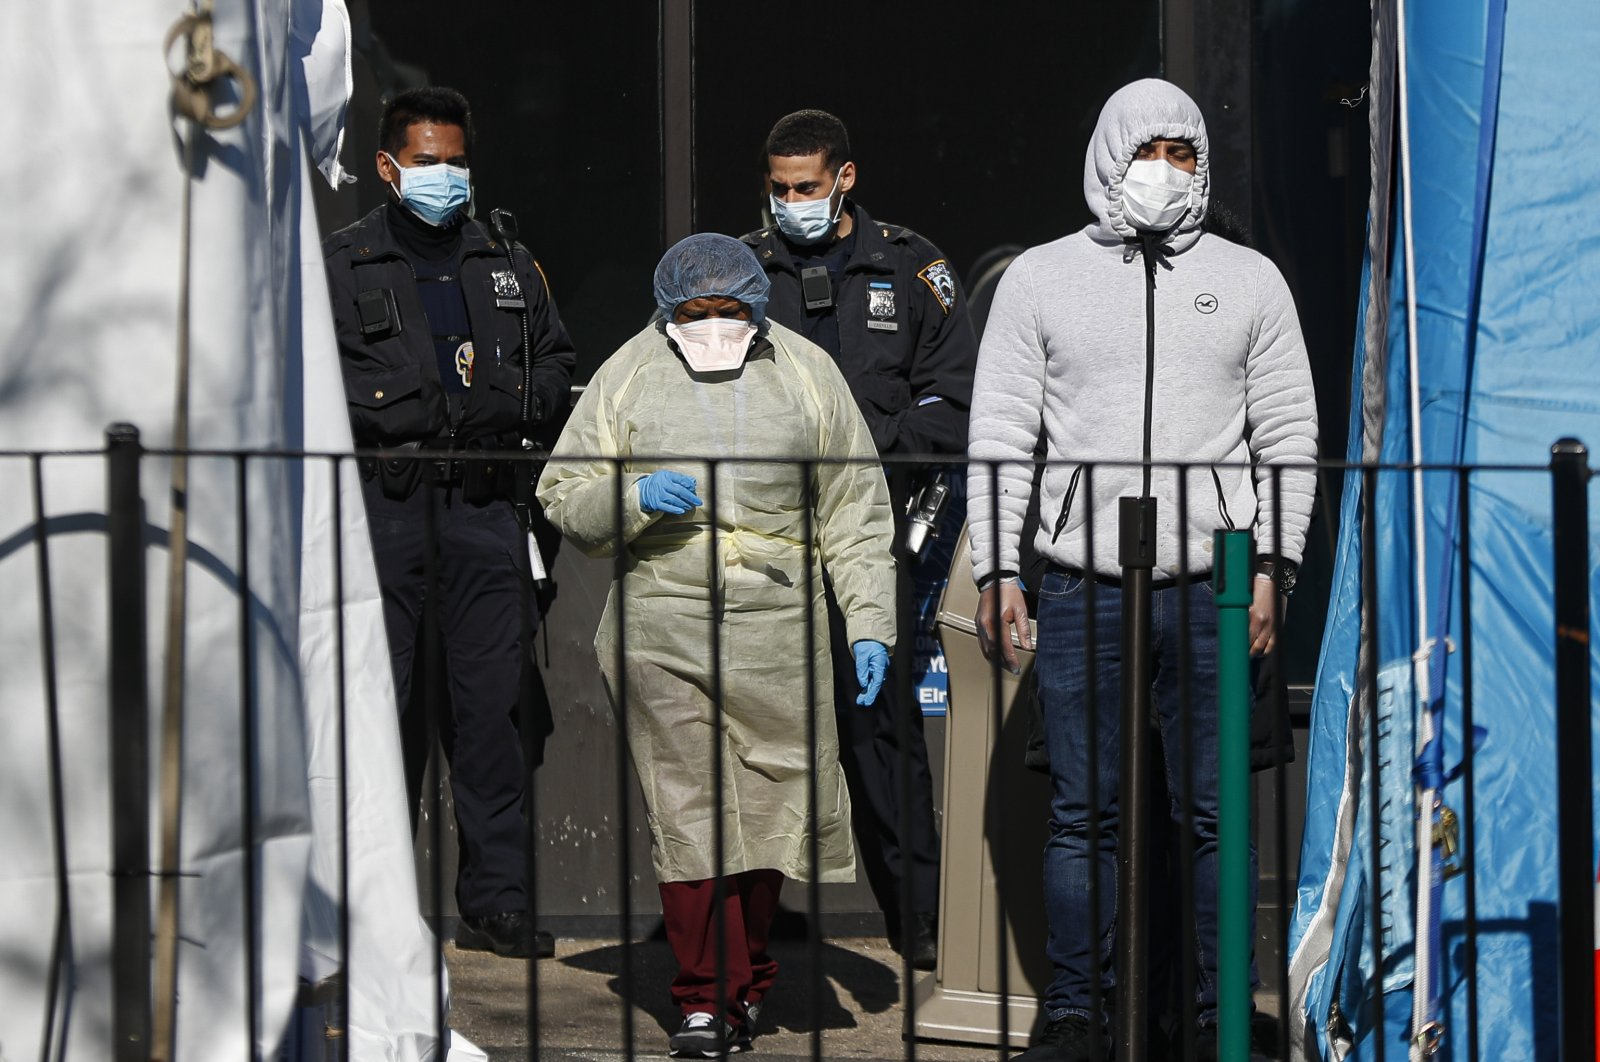 A patient, right, waits to be directed into a COVID-19 testing test by a medical worker outside Elmhurst Hospital Center, Friday, March 27, 2020, in New York. (AP Photo)